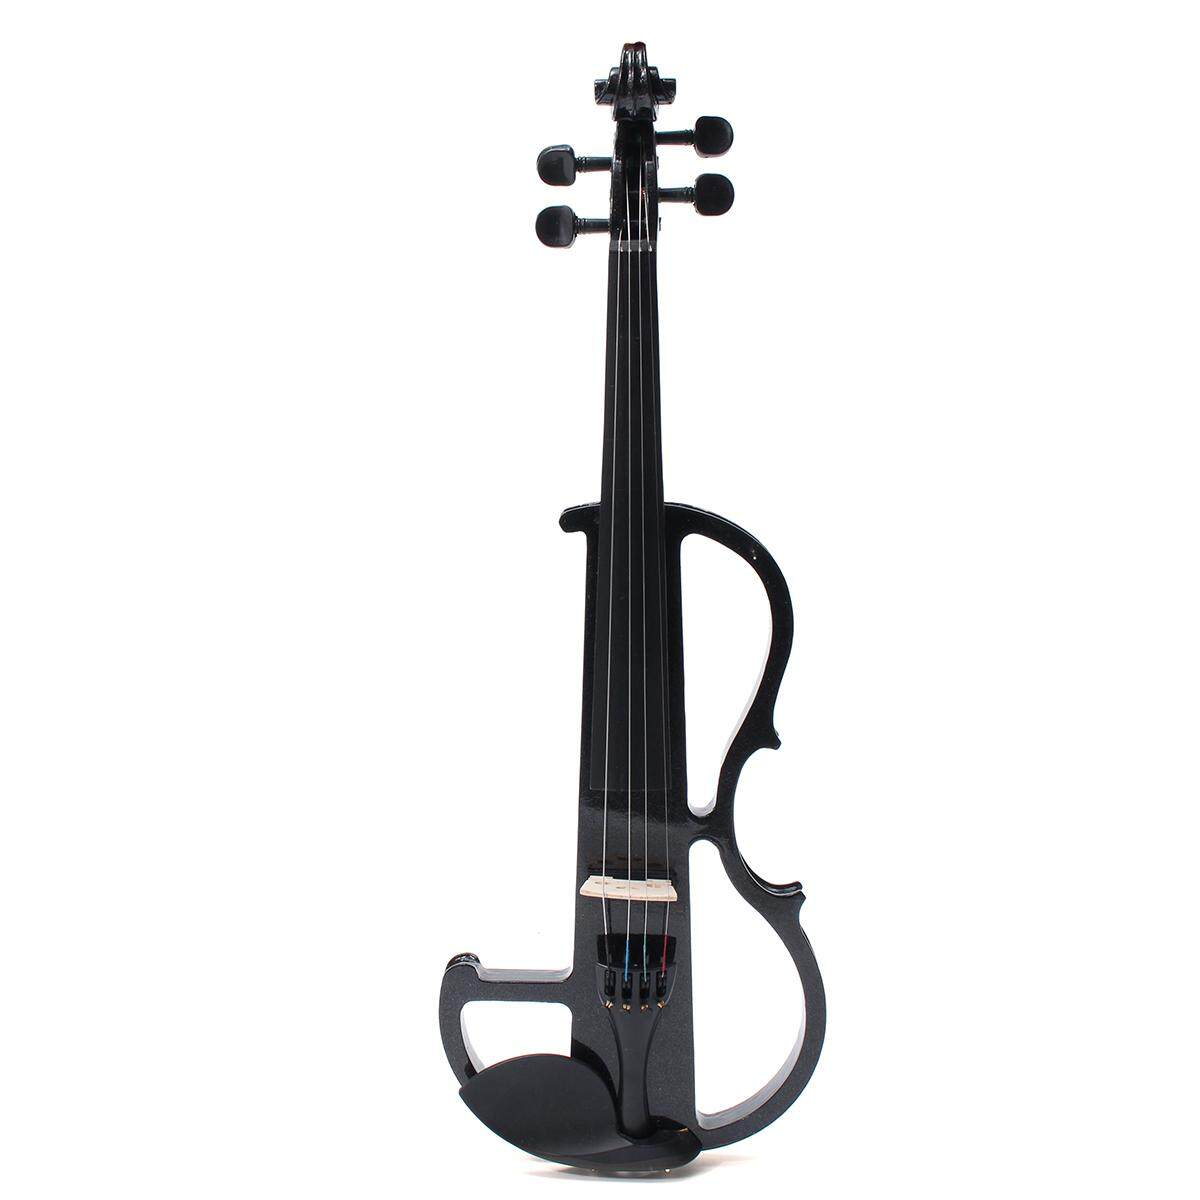 Black Electric Violin 4/4 Full Size Fiddle Case +Bow +Headphone +Cable